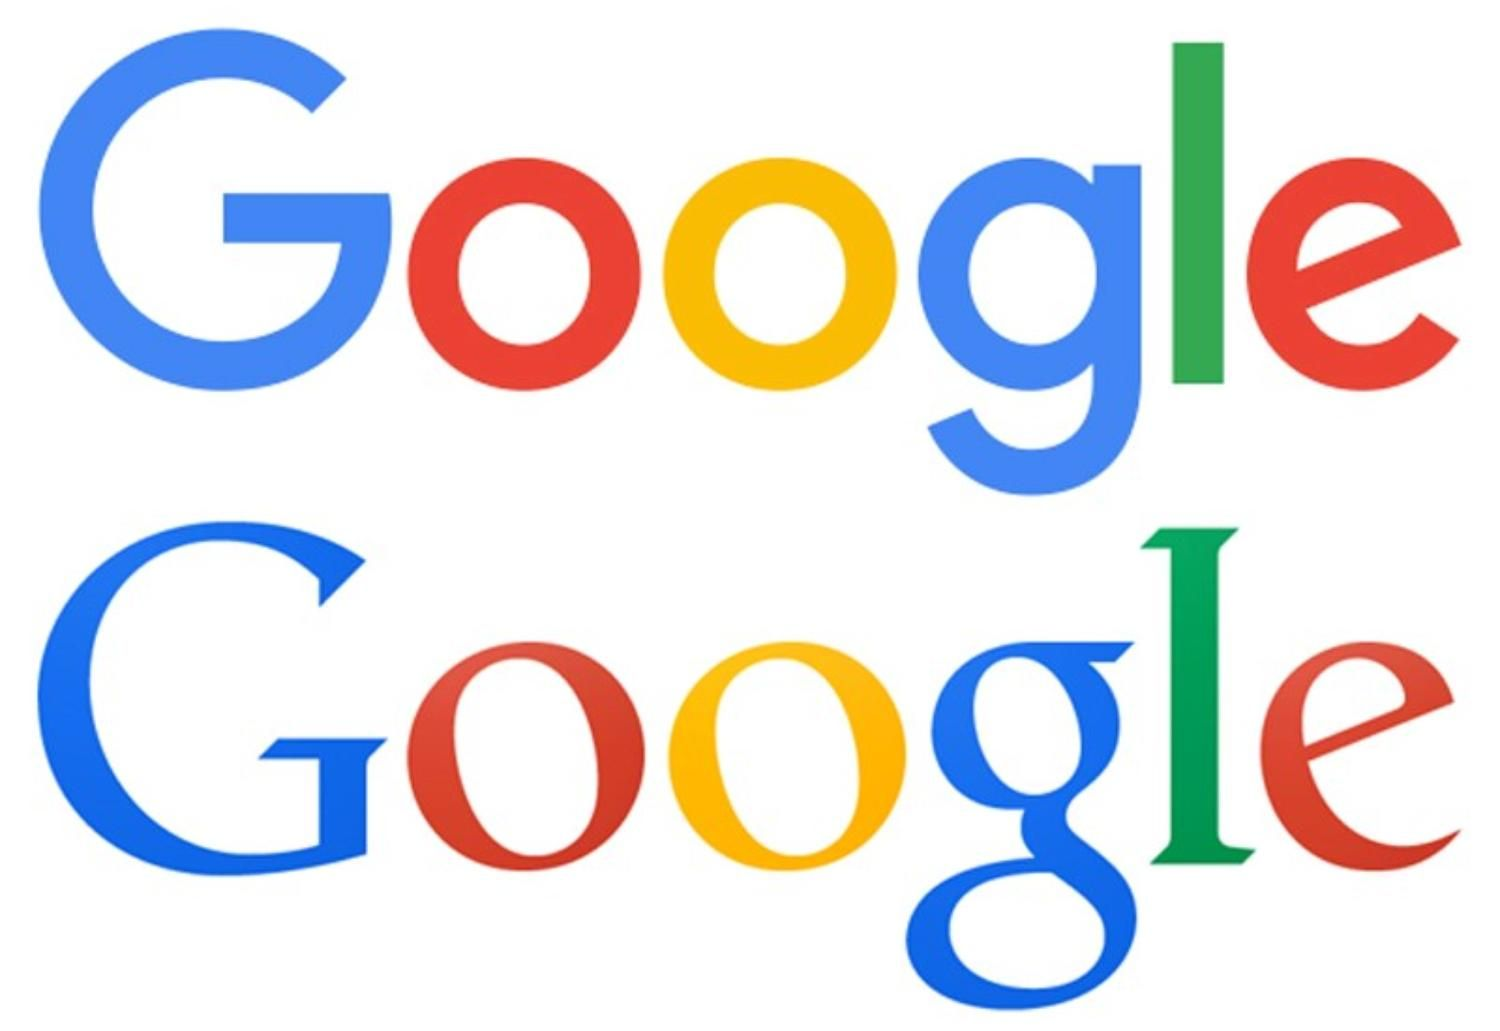 (Reuters) - Google Inc <GOOGL.O> <GOOG.O> unveiled a redesign of its iconic logo on Tuesday, the fifth such modification since the search engine giant started in 1998, the company said in a blog post. The revamped logo, displayed as a Google Doodle on its homepage, spells 'Google' in a sans-serif...